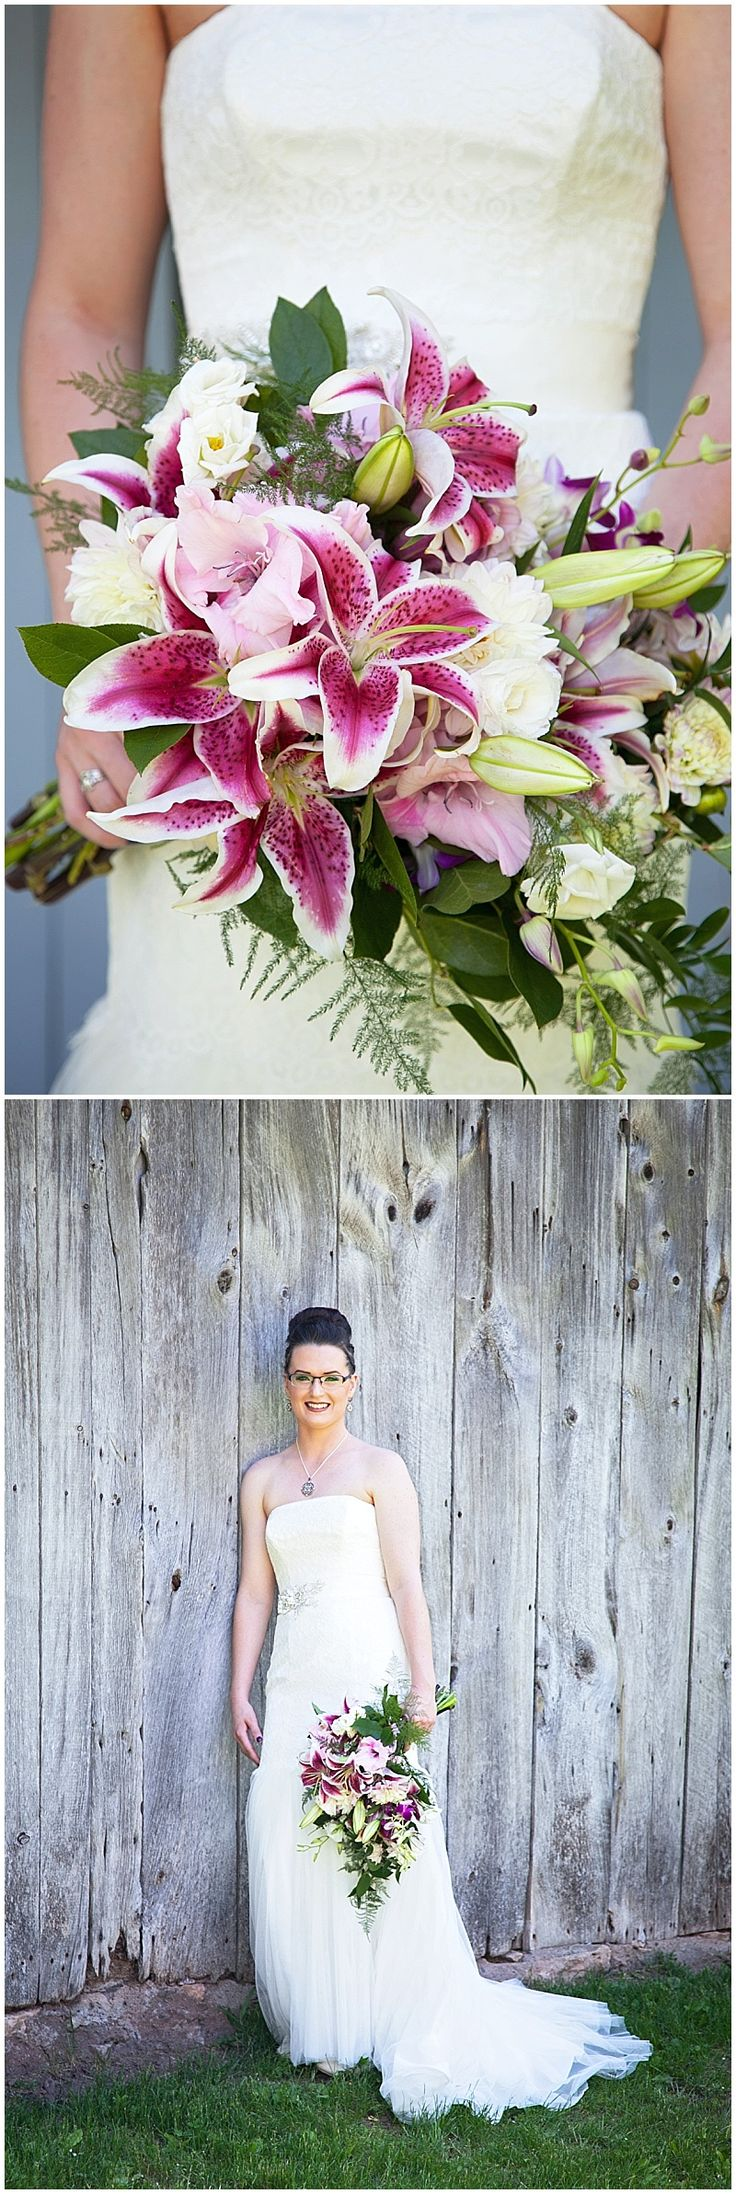 Bridal bouquet designed by Minneapolis wedding florist Artemisia Studios with stargazer lilies, dendrobium orchids, lisianthus, gladiolus, two-toned dahlias, Italian Ruscus, and plumosa. Photos by Patrick Clancy Photography (http://www.patrickclancy.com/) #stargazerlilies #bride #bridalbouquet #Lilies #minneapolisflorist #florist #weddingflorist #summerflowers #minneapolisweddingflorist #minnesotaweddingflorist #artemisiastudios